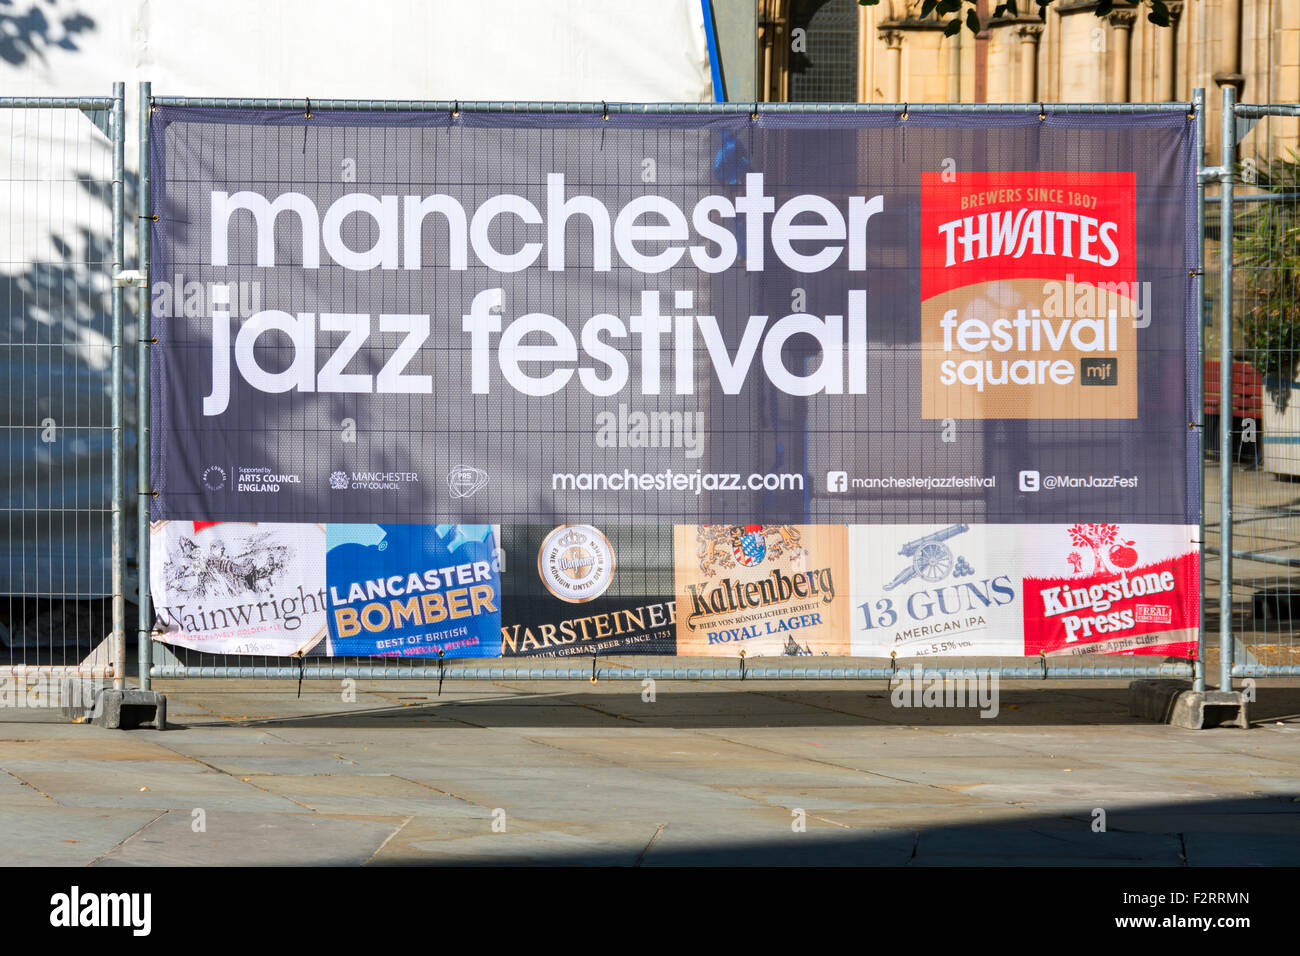 Sign promoting the Manchester Jazz Festival, Albert Square, Manchester, England, UK - Stock Image